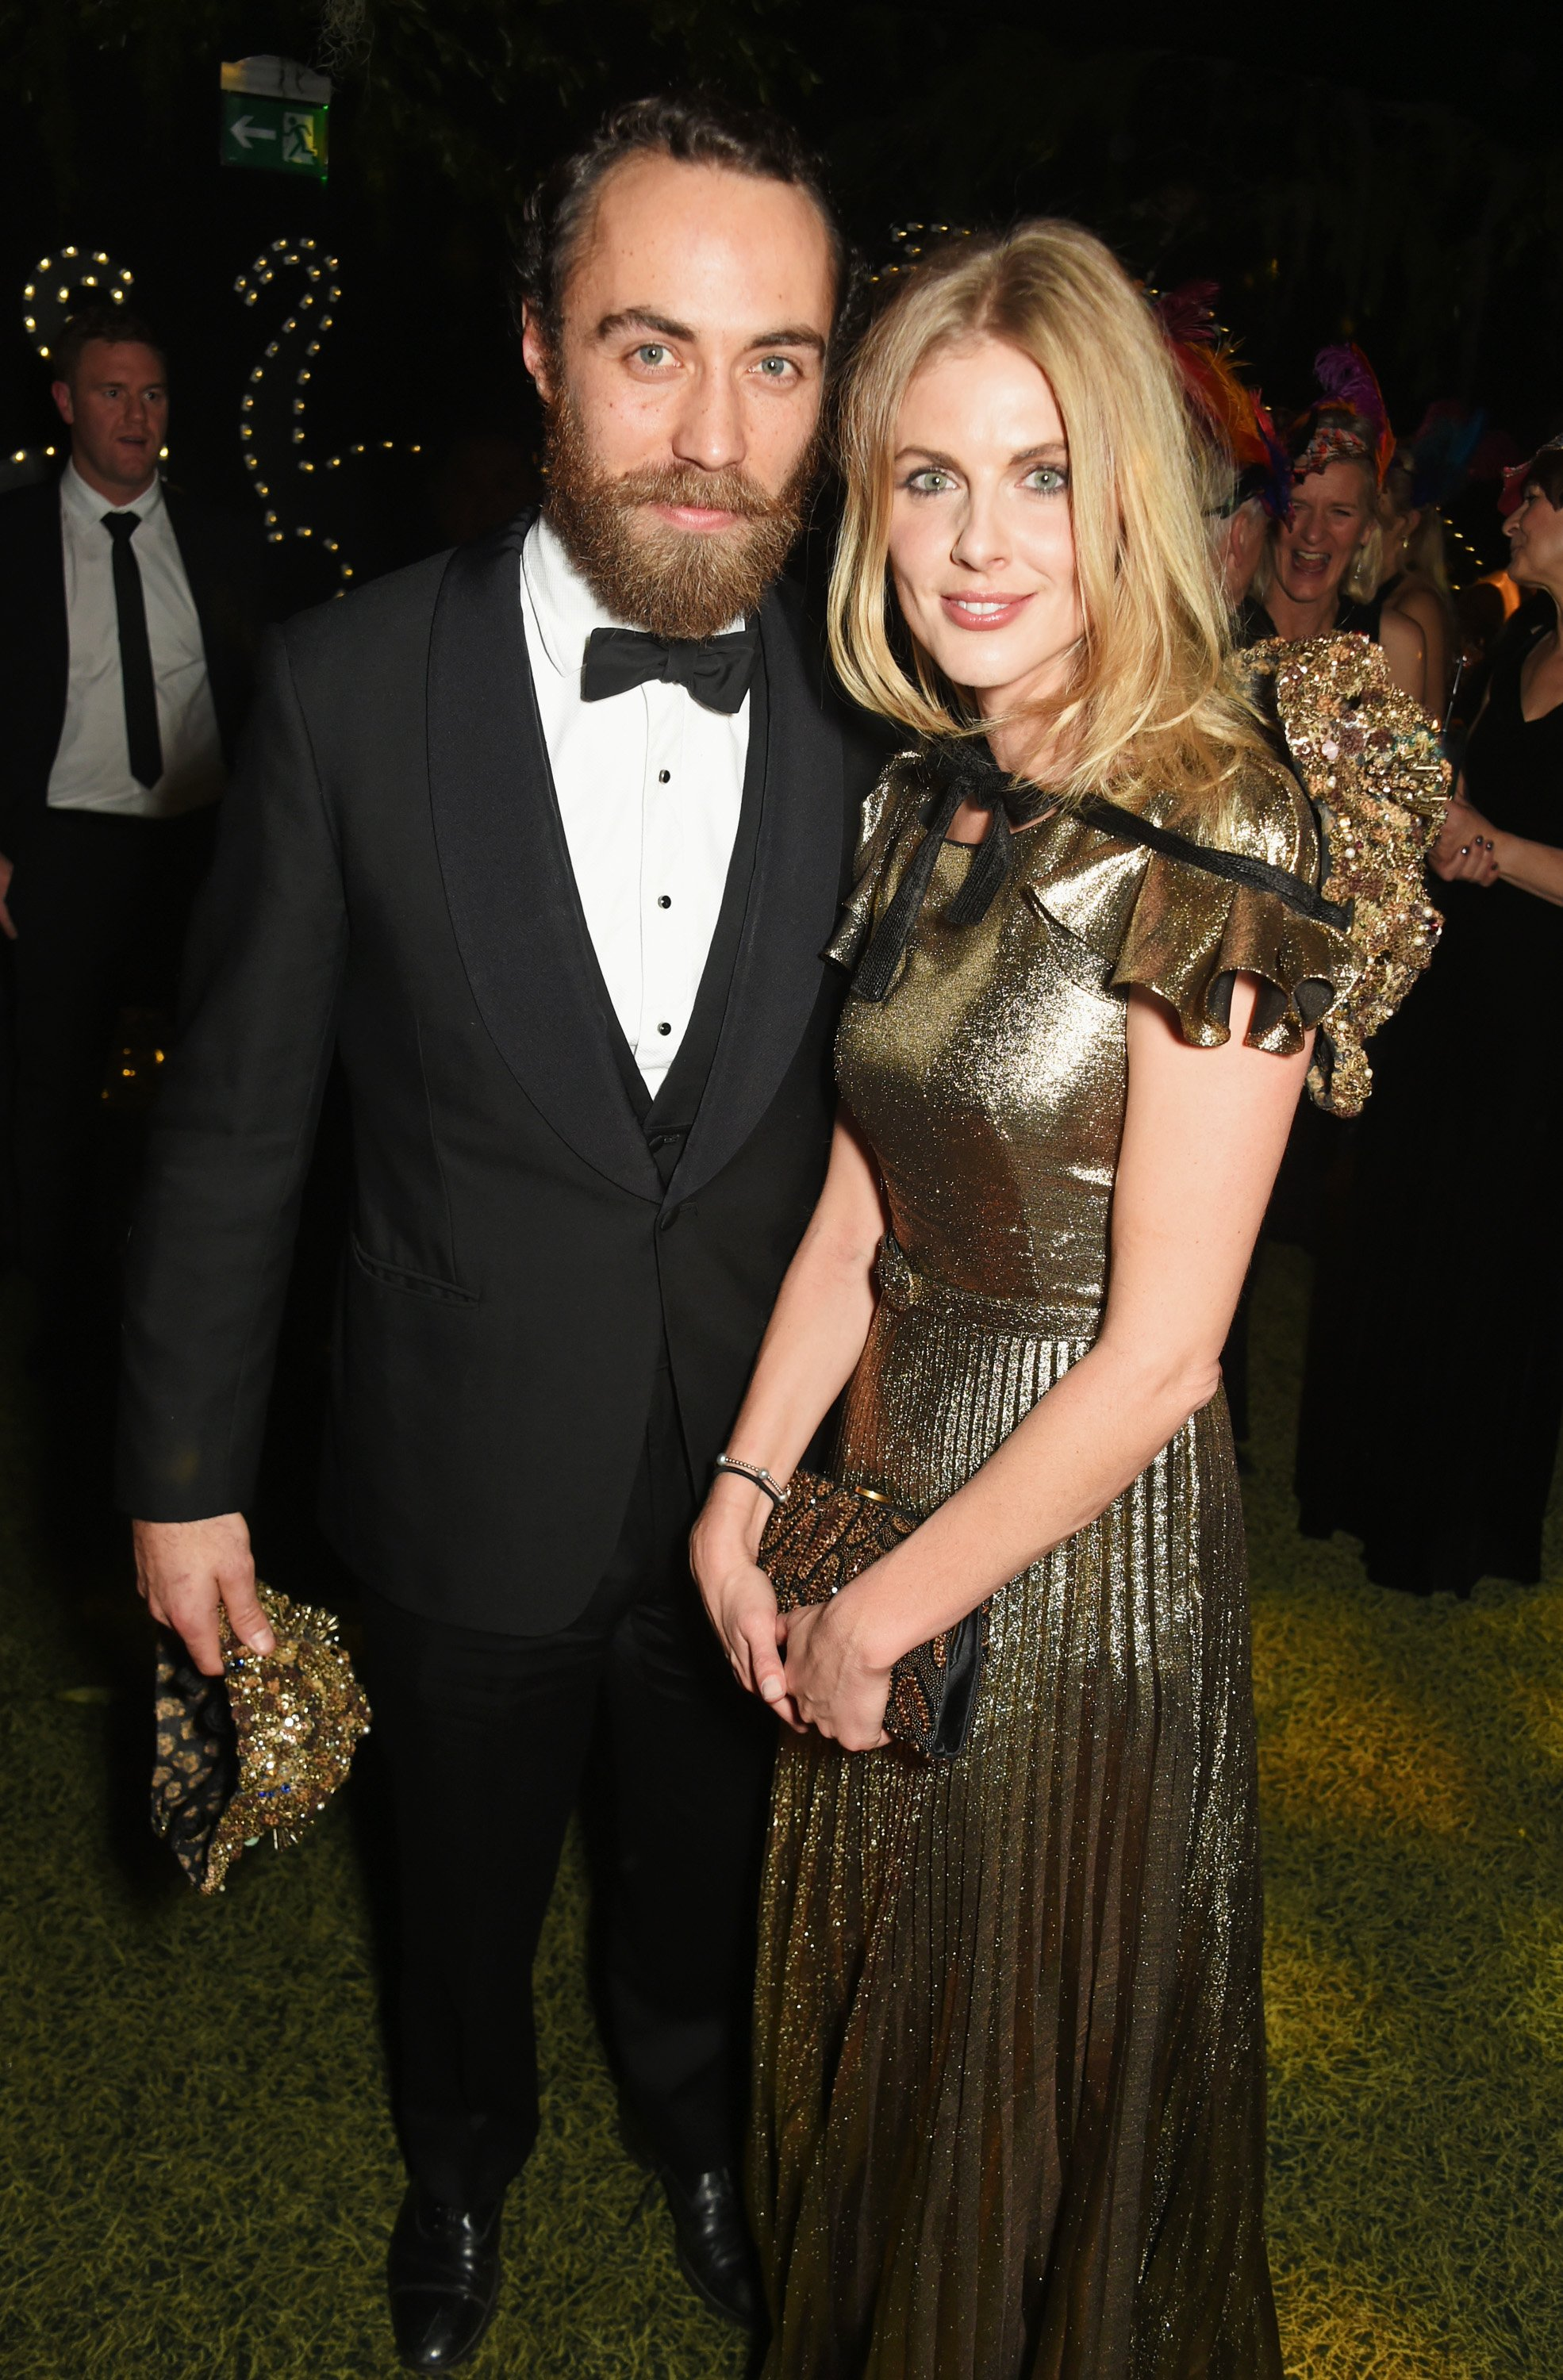 James Middleton and Donna Air attend The Animal Ball 2016 on November 22, 2016, in London, England. | Source: Getty Images.